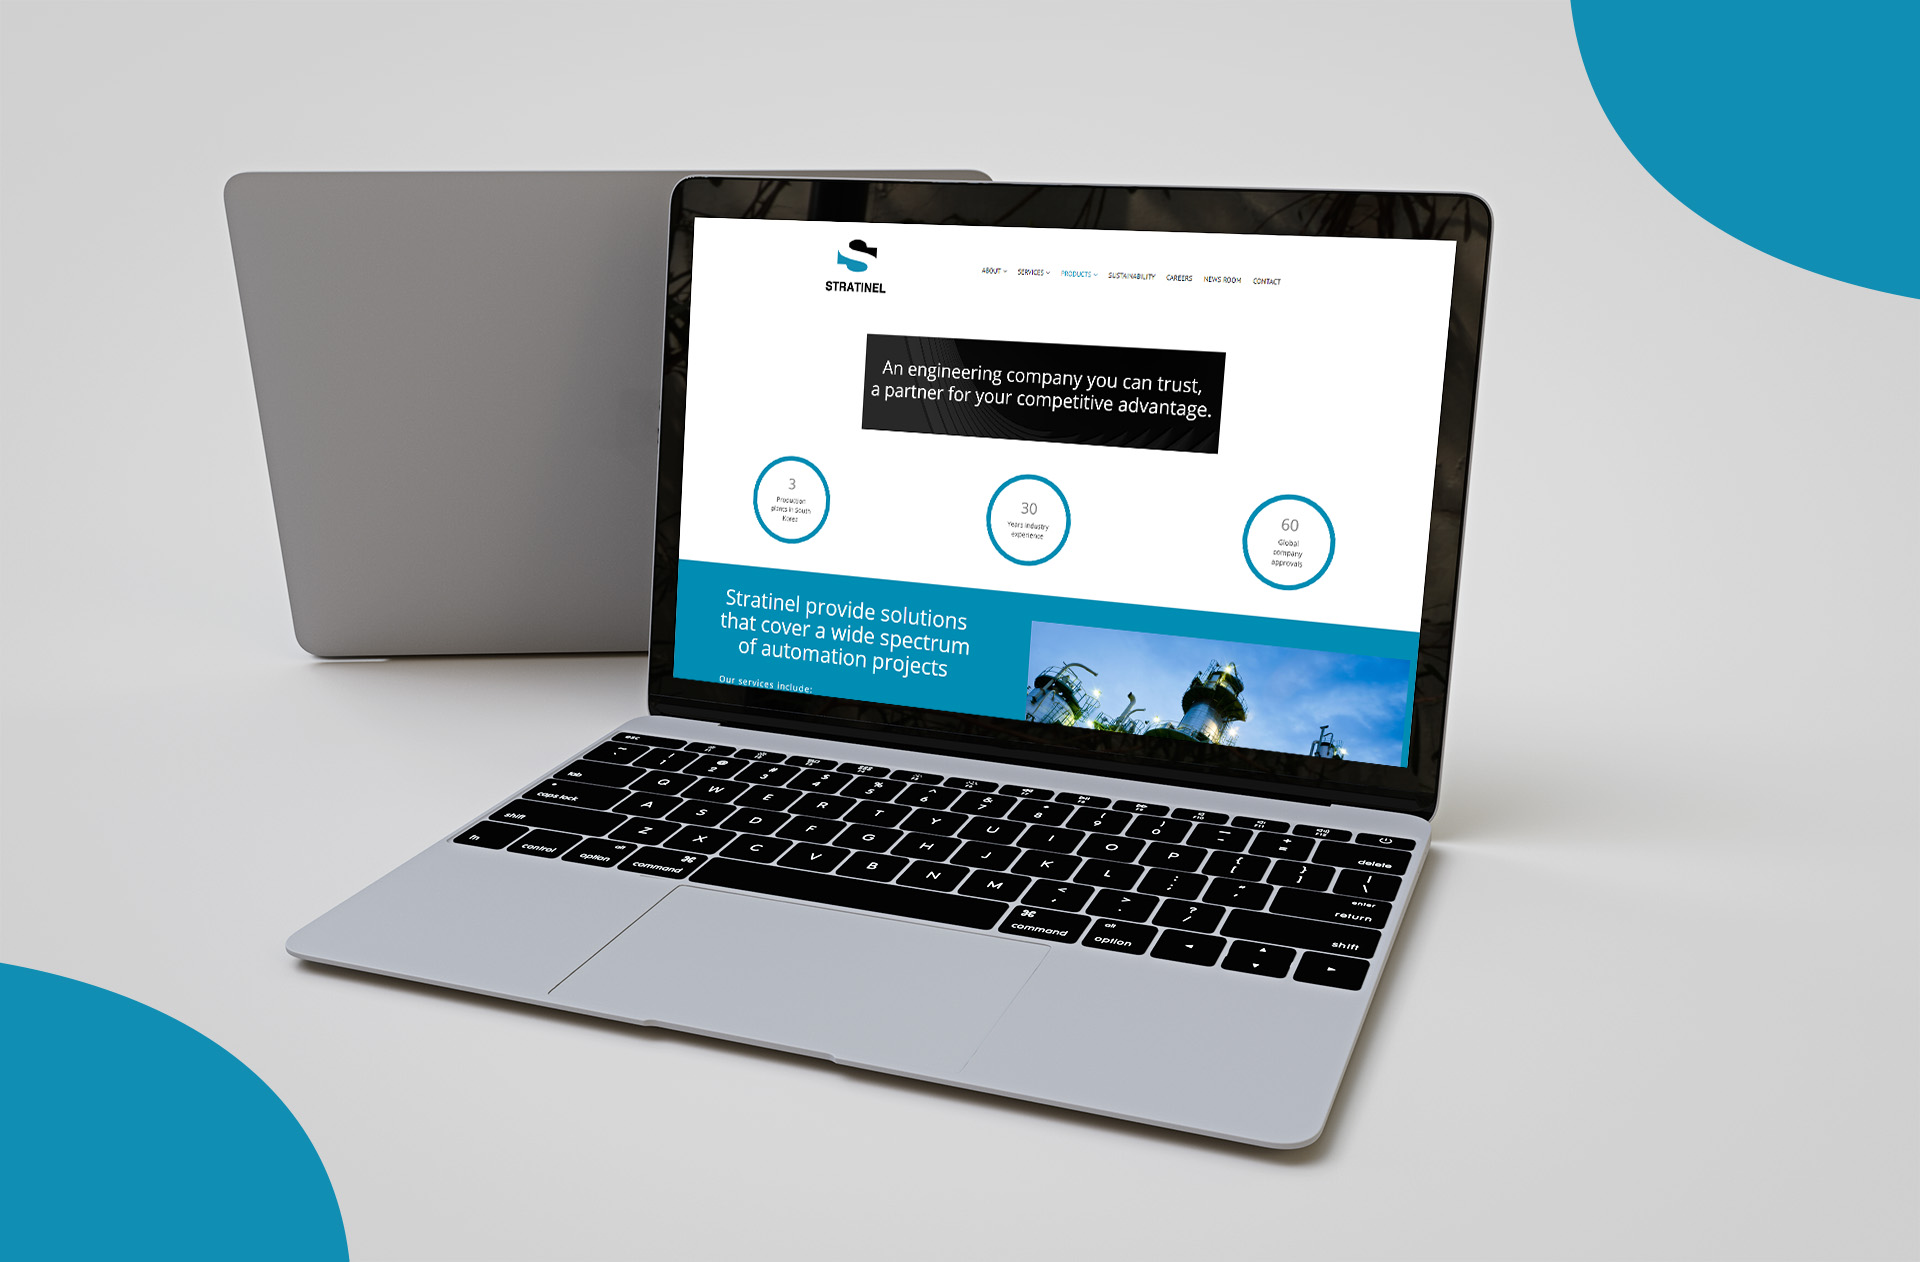 Oil and Gass Company - website design